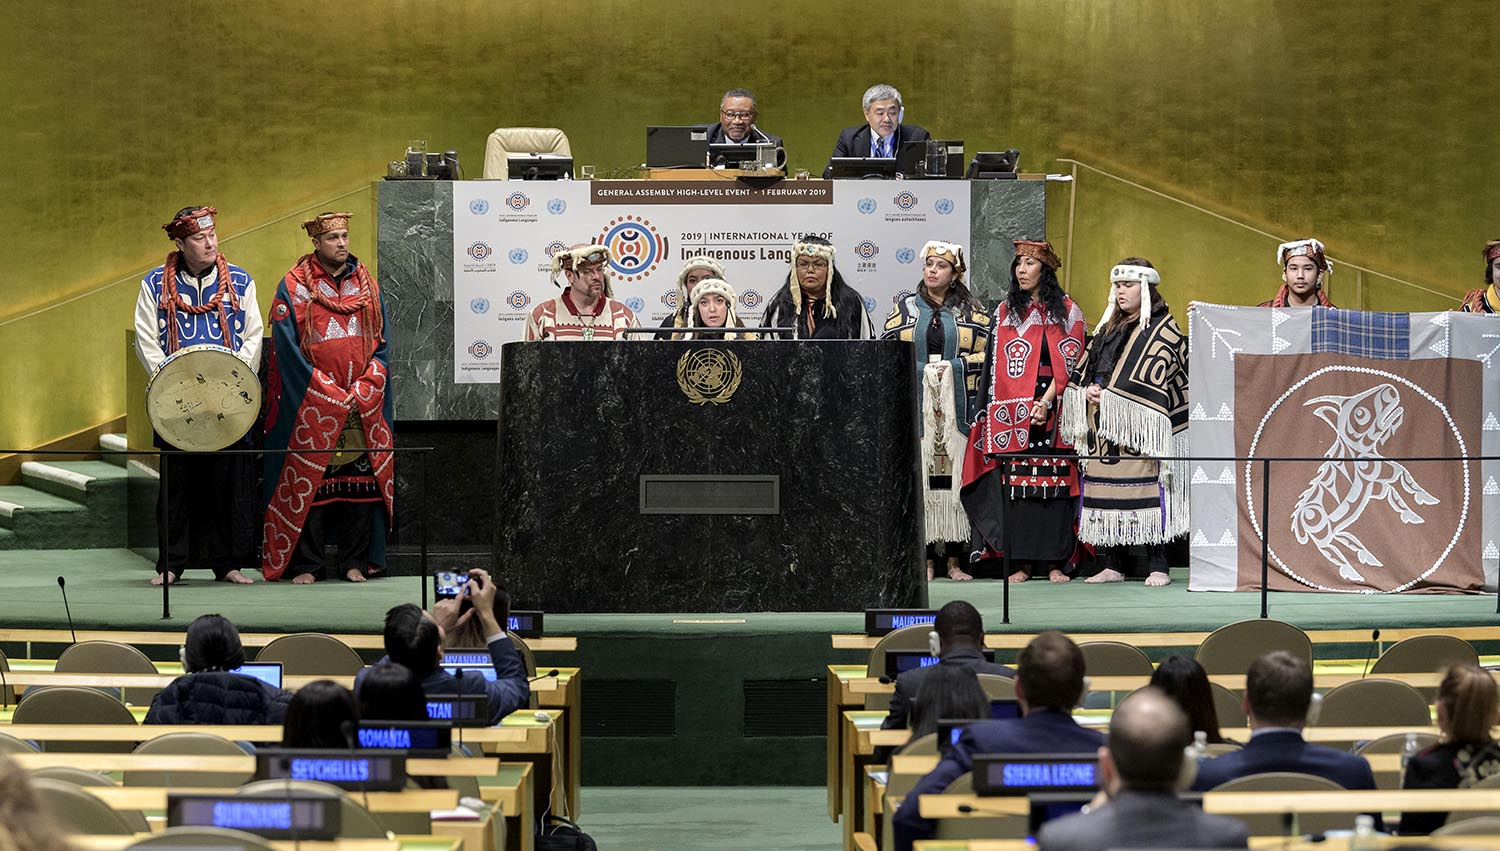 02 UN International Decade of Indigenous Languages